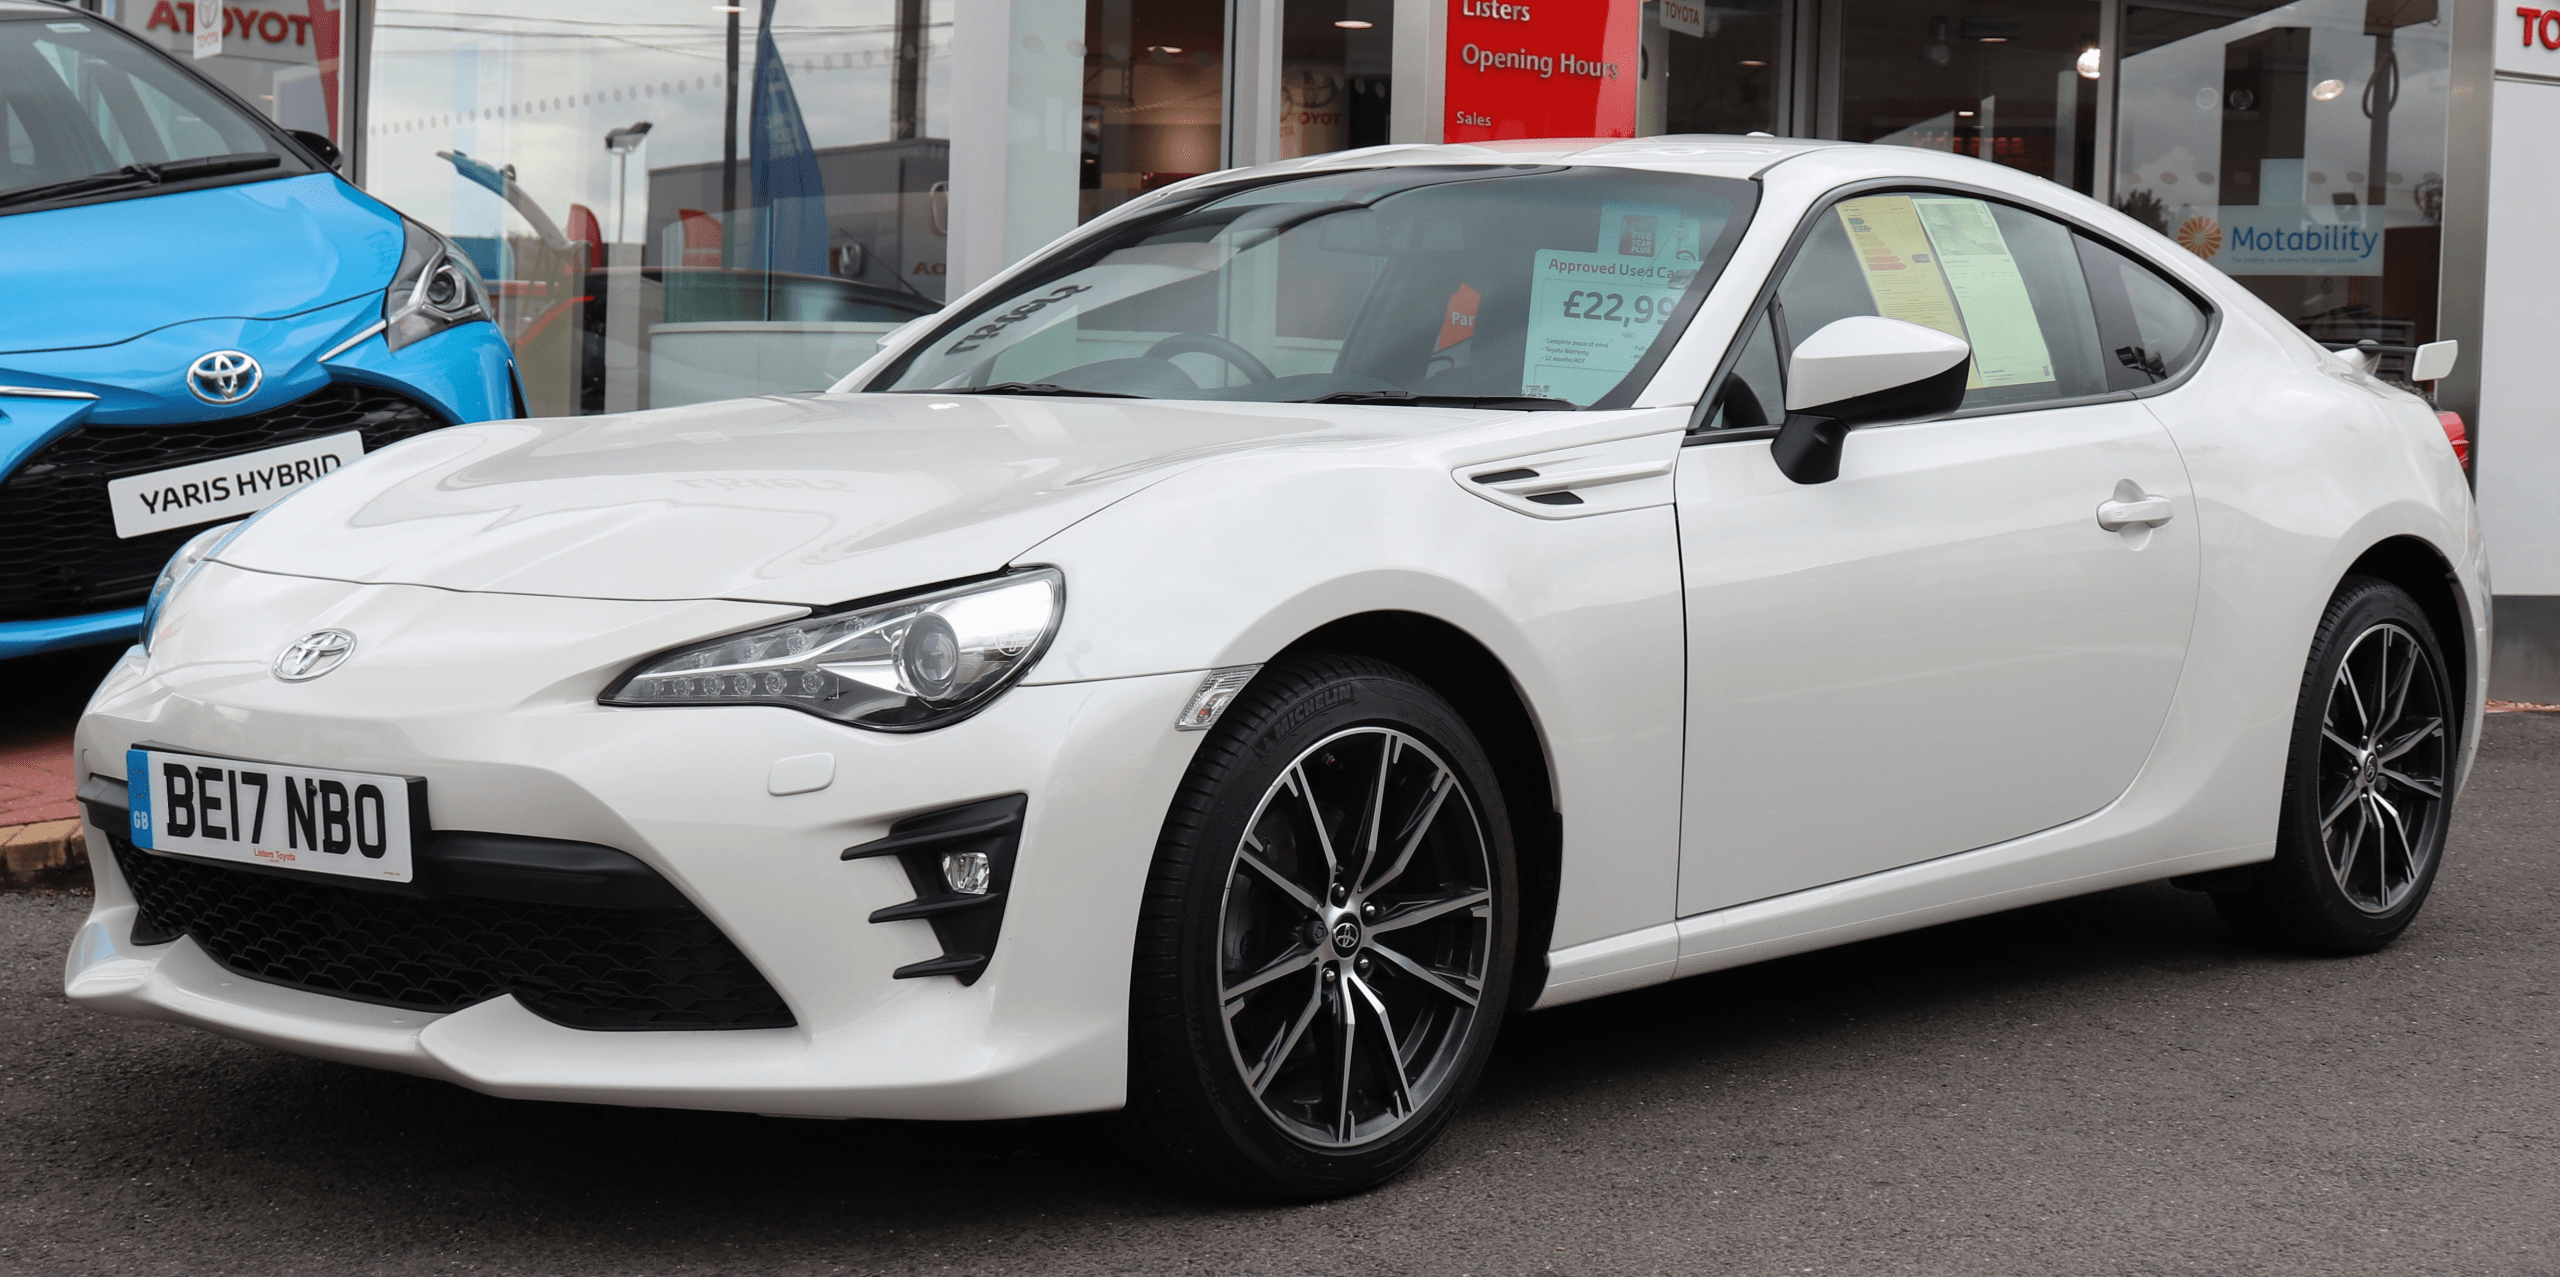 2021 Scion Frs Price, Design and Review